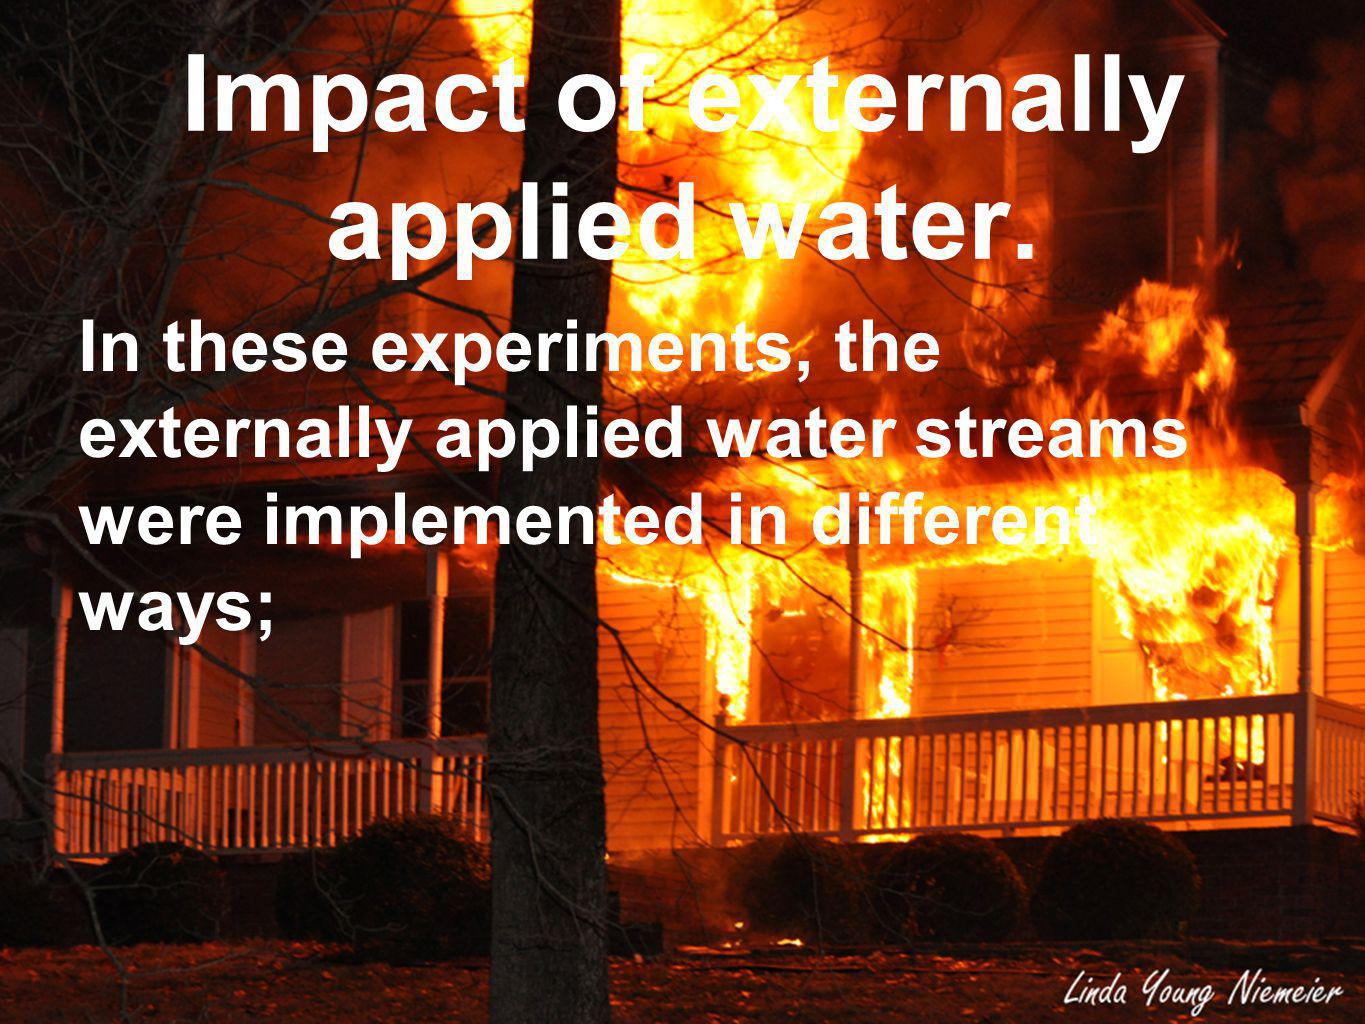 Impact of externally applied water.